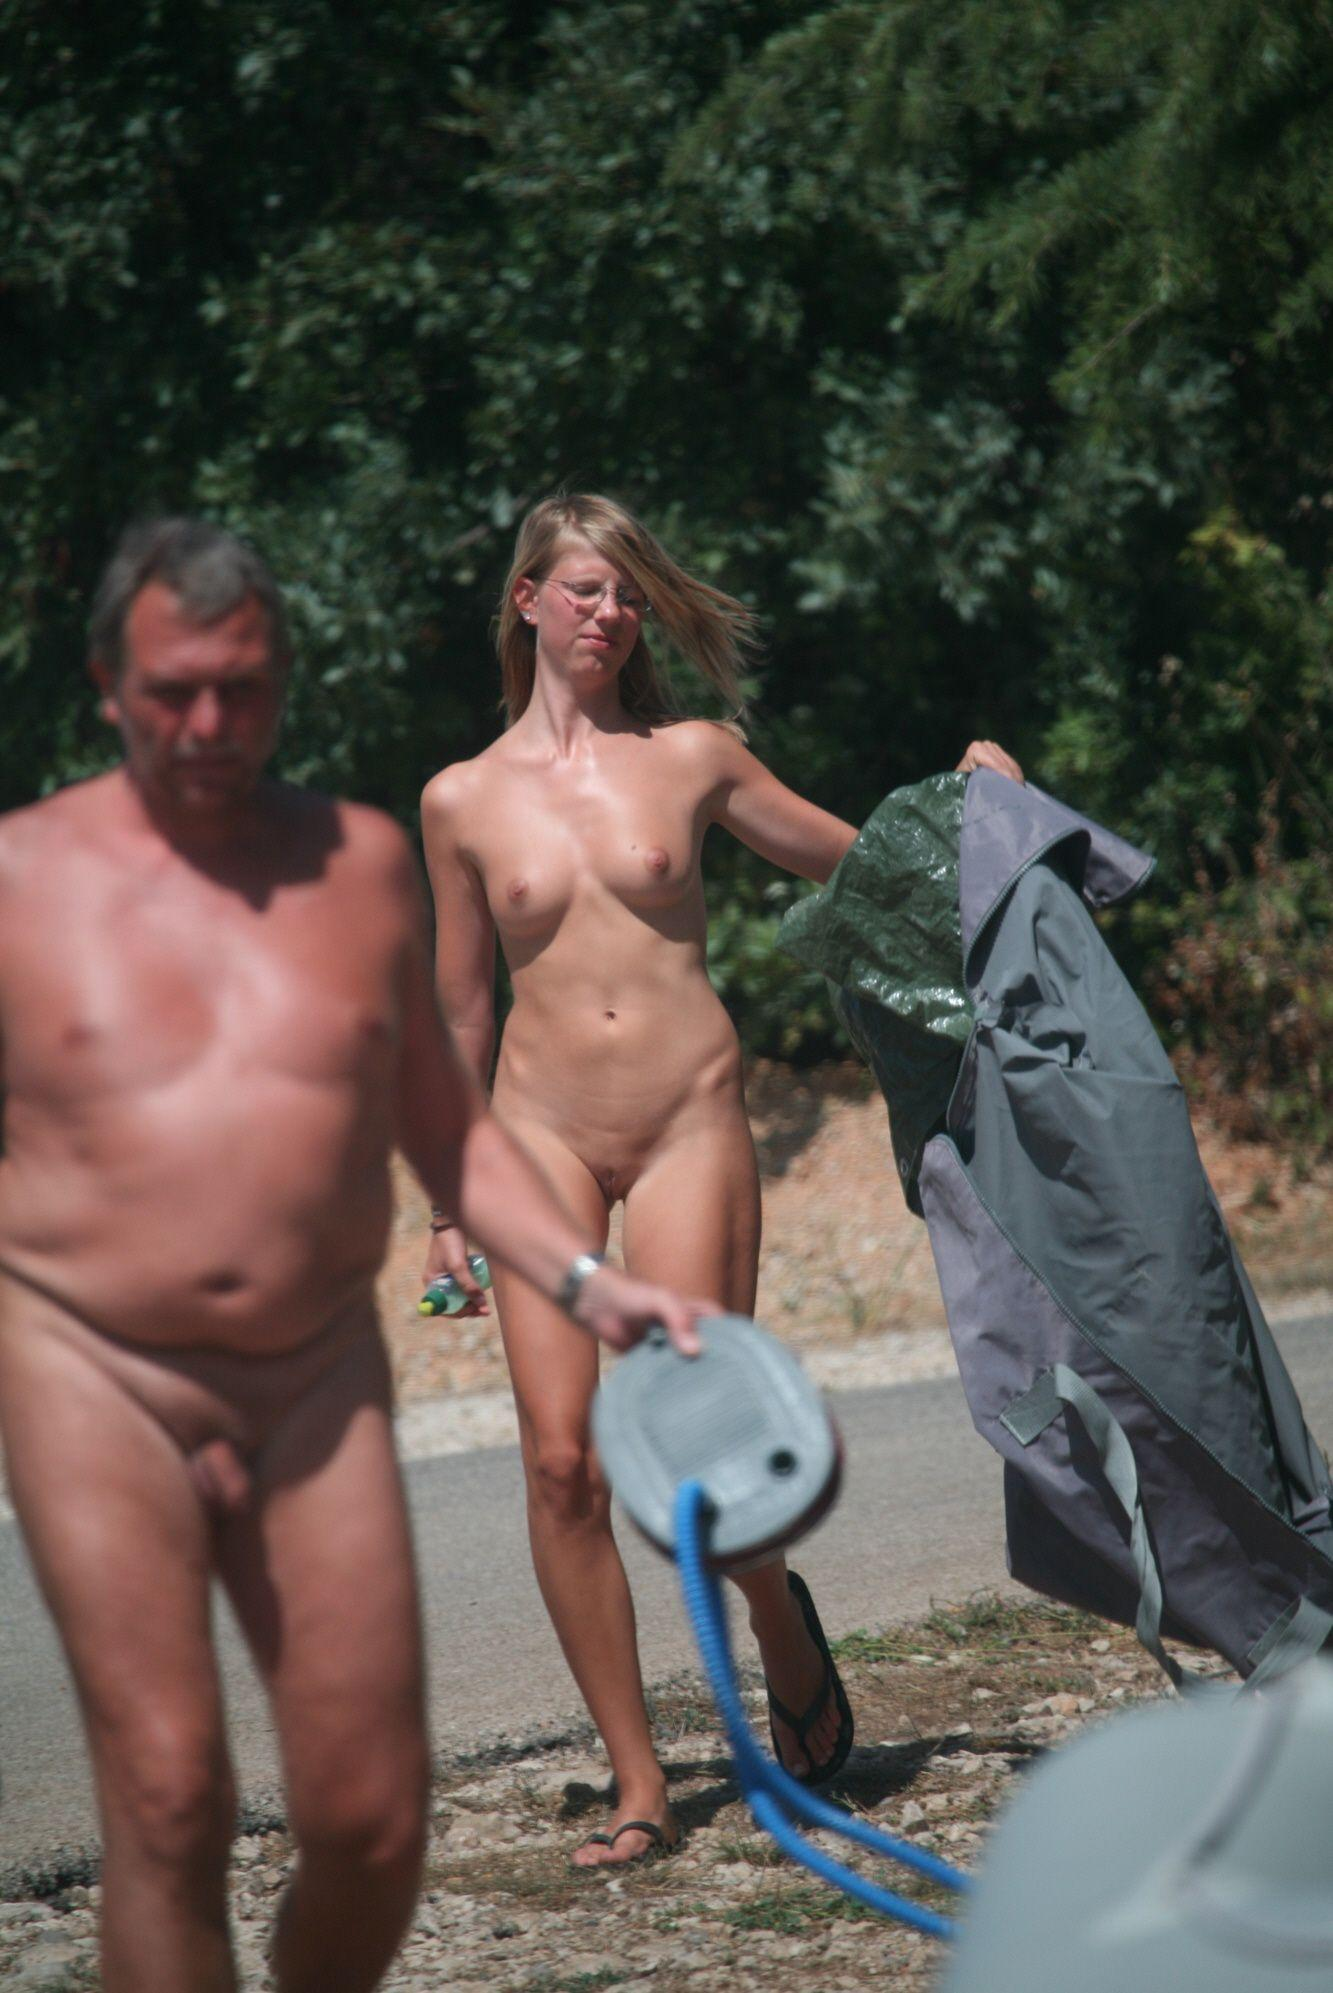 Camp couple nudist pic 3